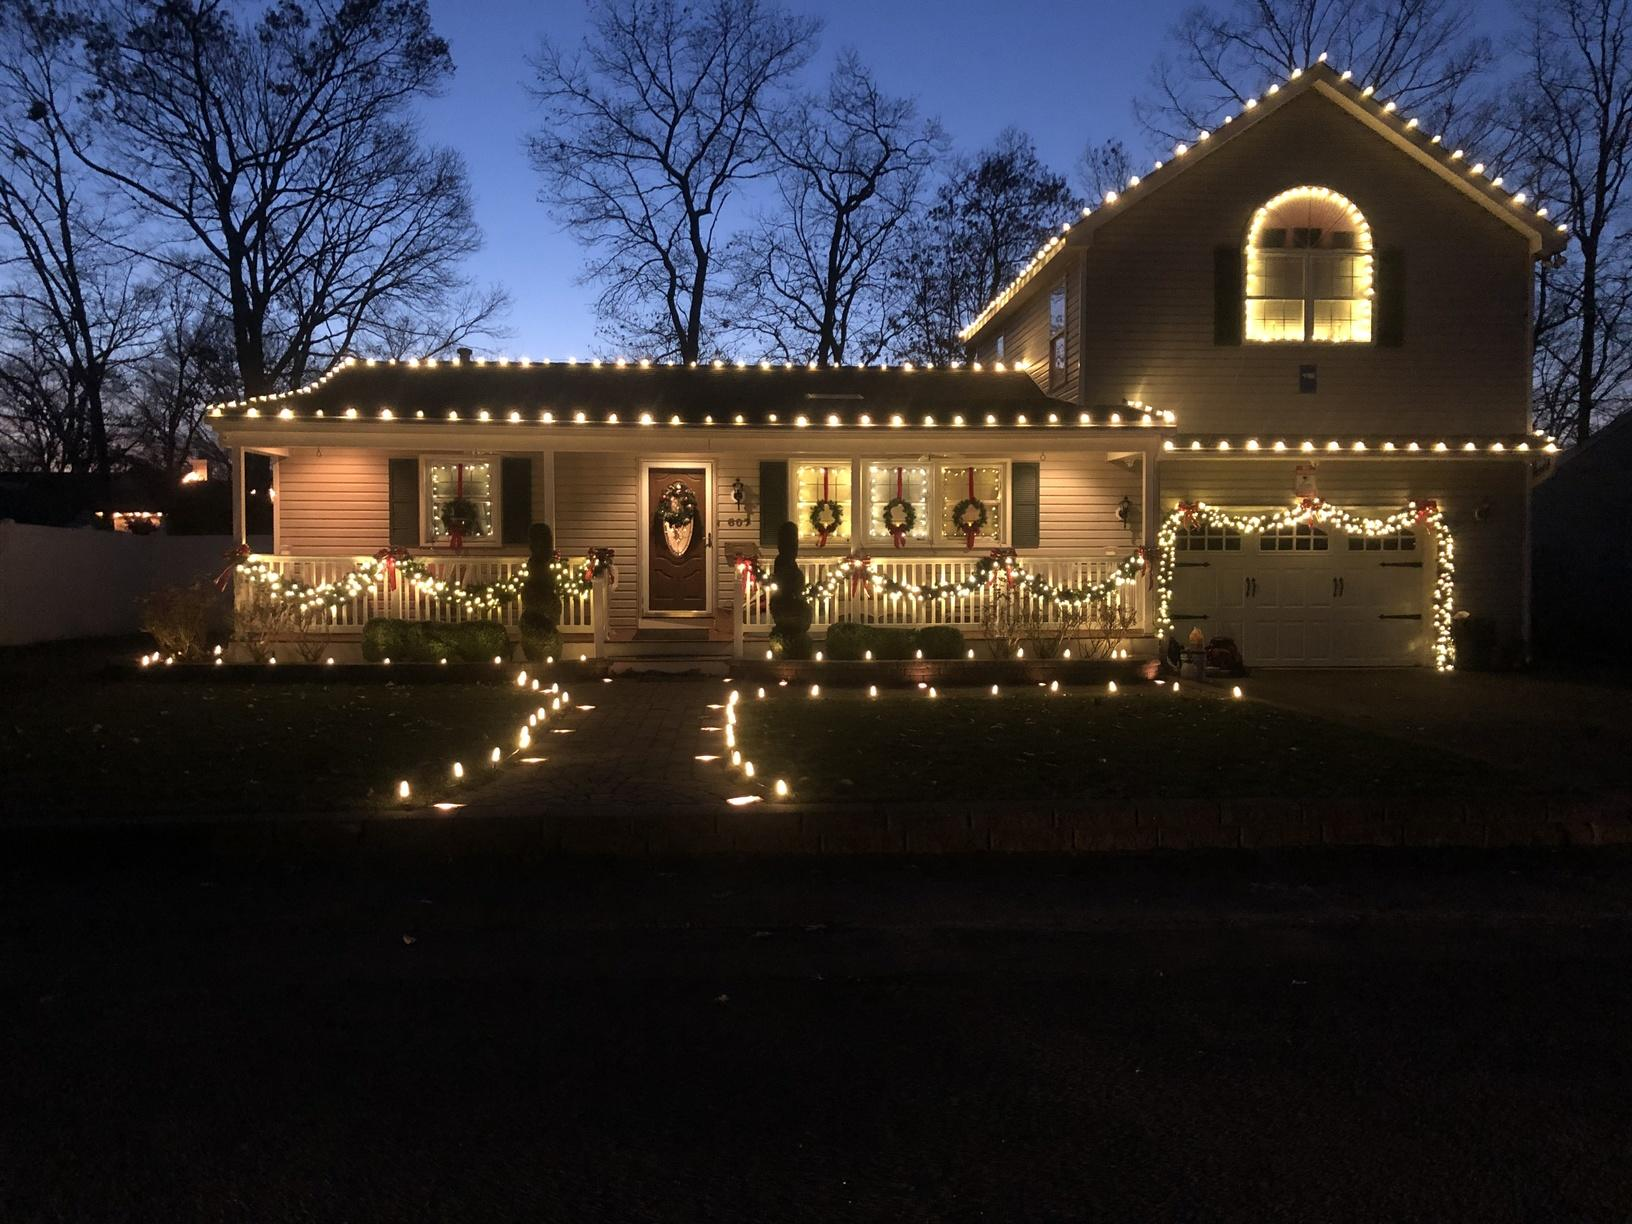 Holiday Light Display in Point Pleasant, NJ - After Photo